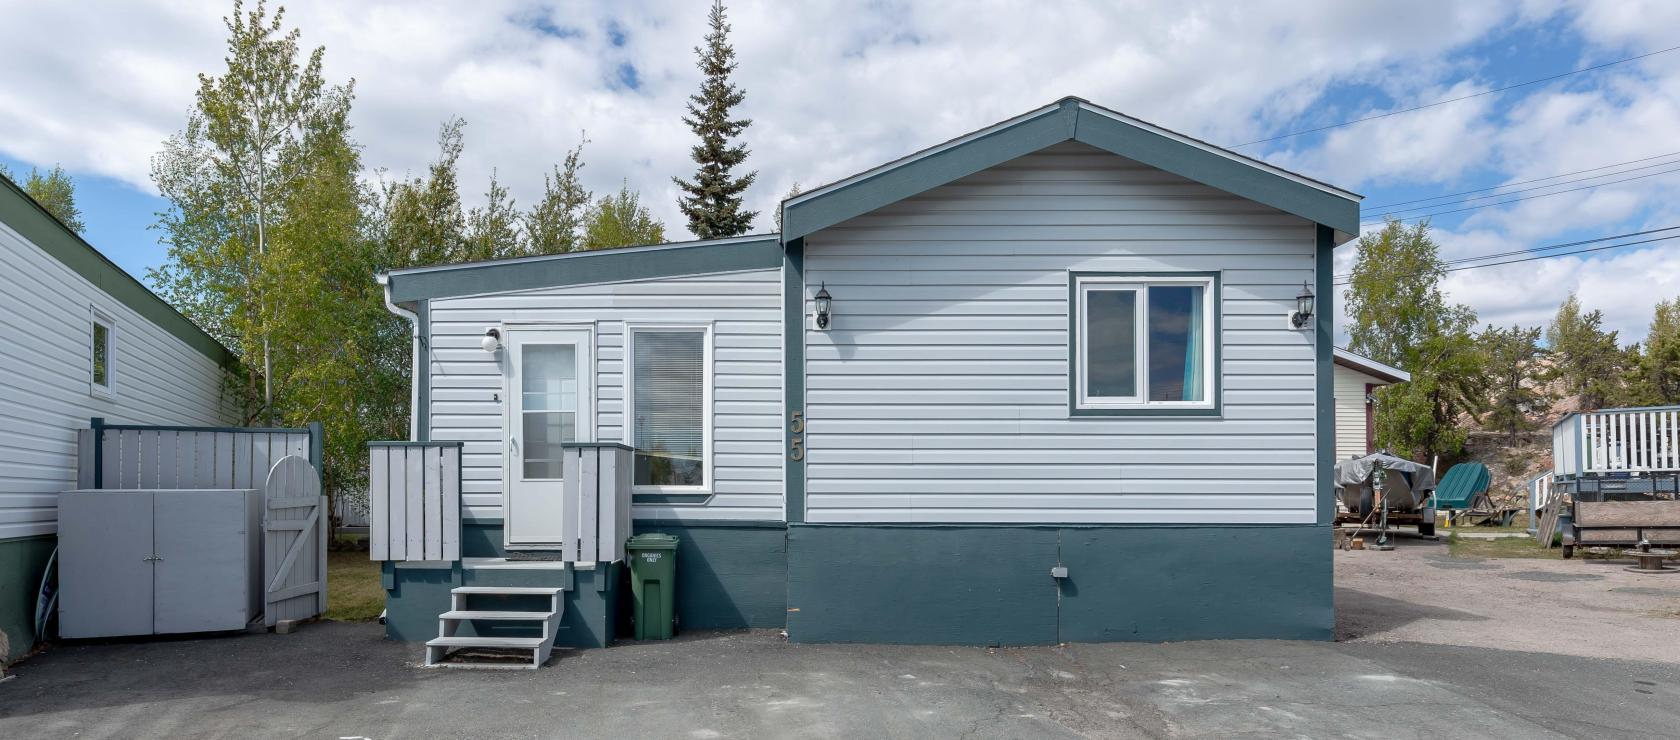 55 Hordal Road, Frame Lake, Yellowknife 2